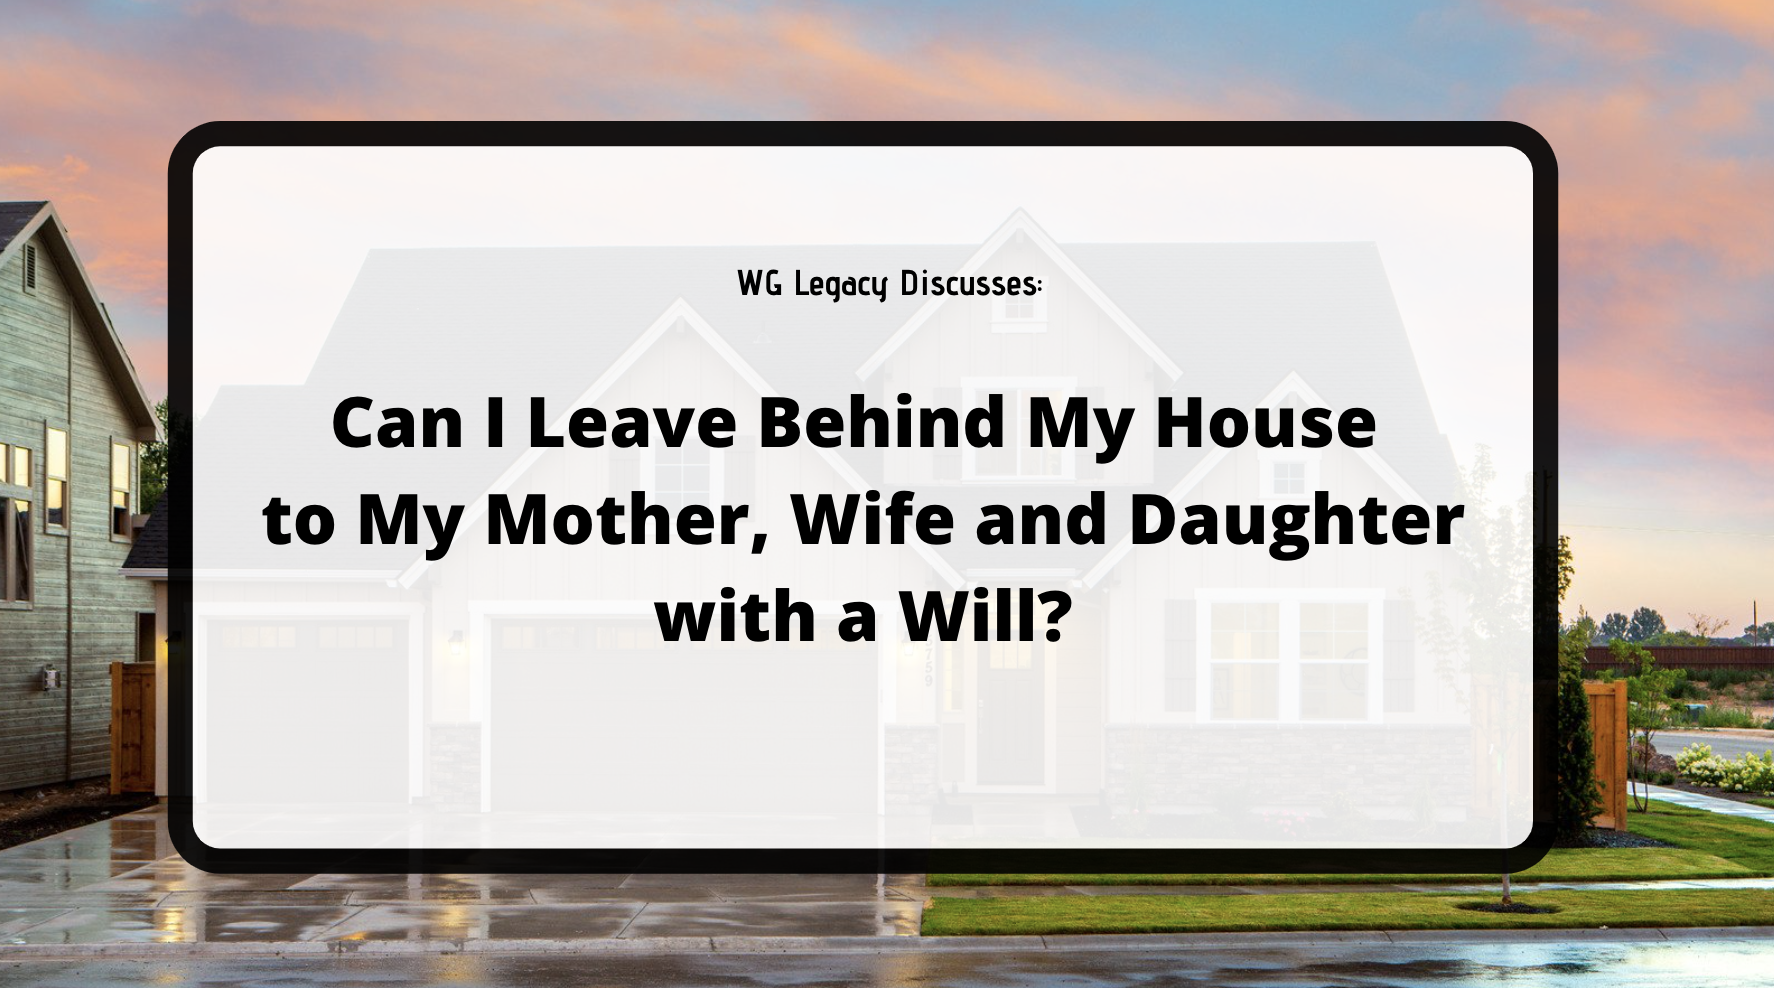 Can I Leave Behind My House to My Mother, Wife, and Daughter with a Will?